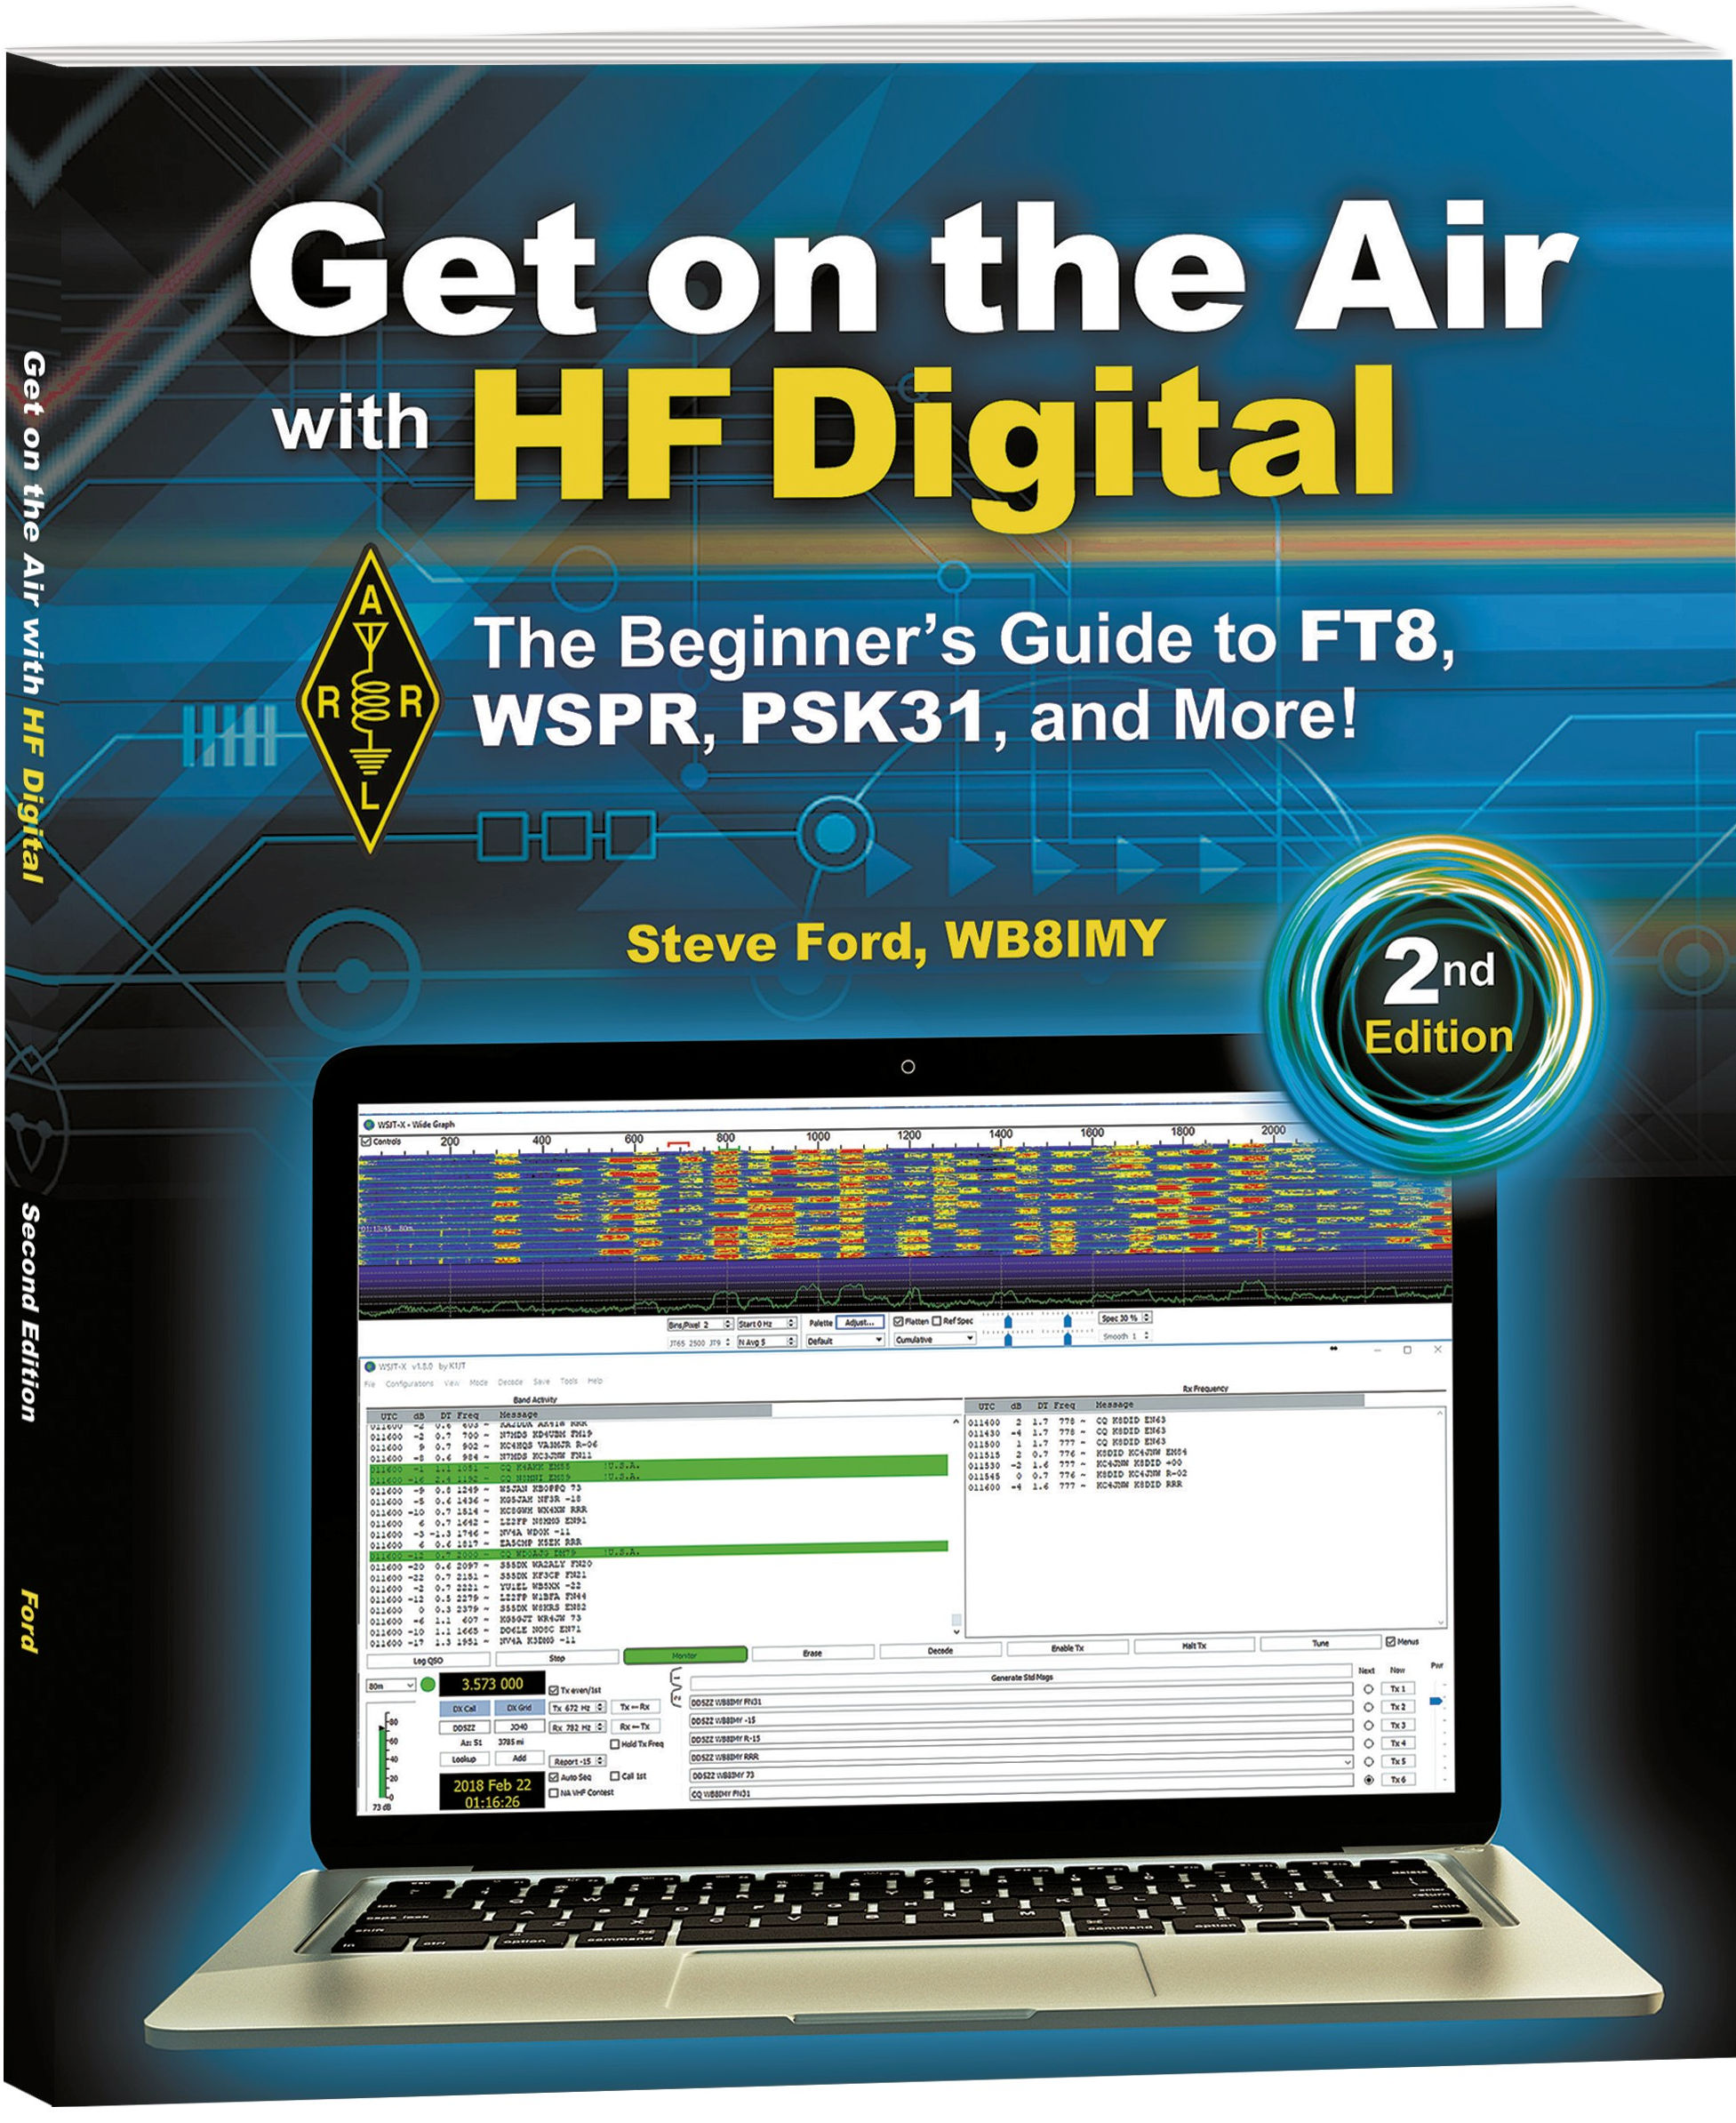 New Book Featuring Popular Modes FT8 and WSPR is Now Shipping!